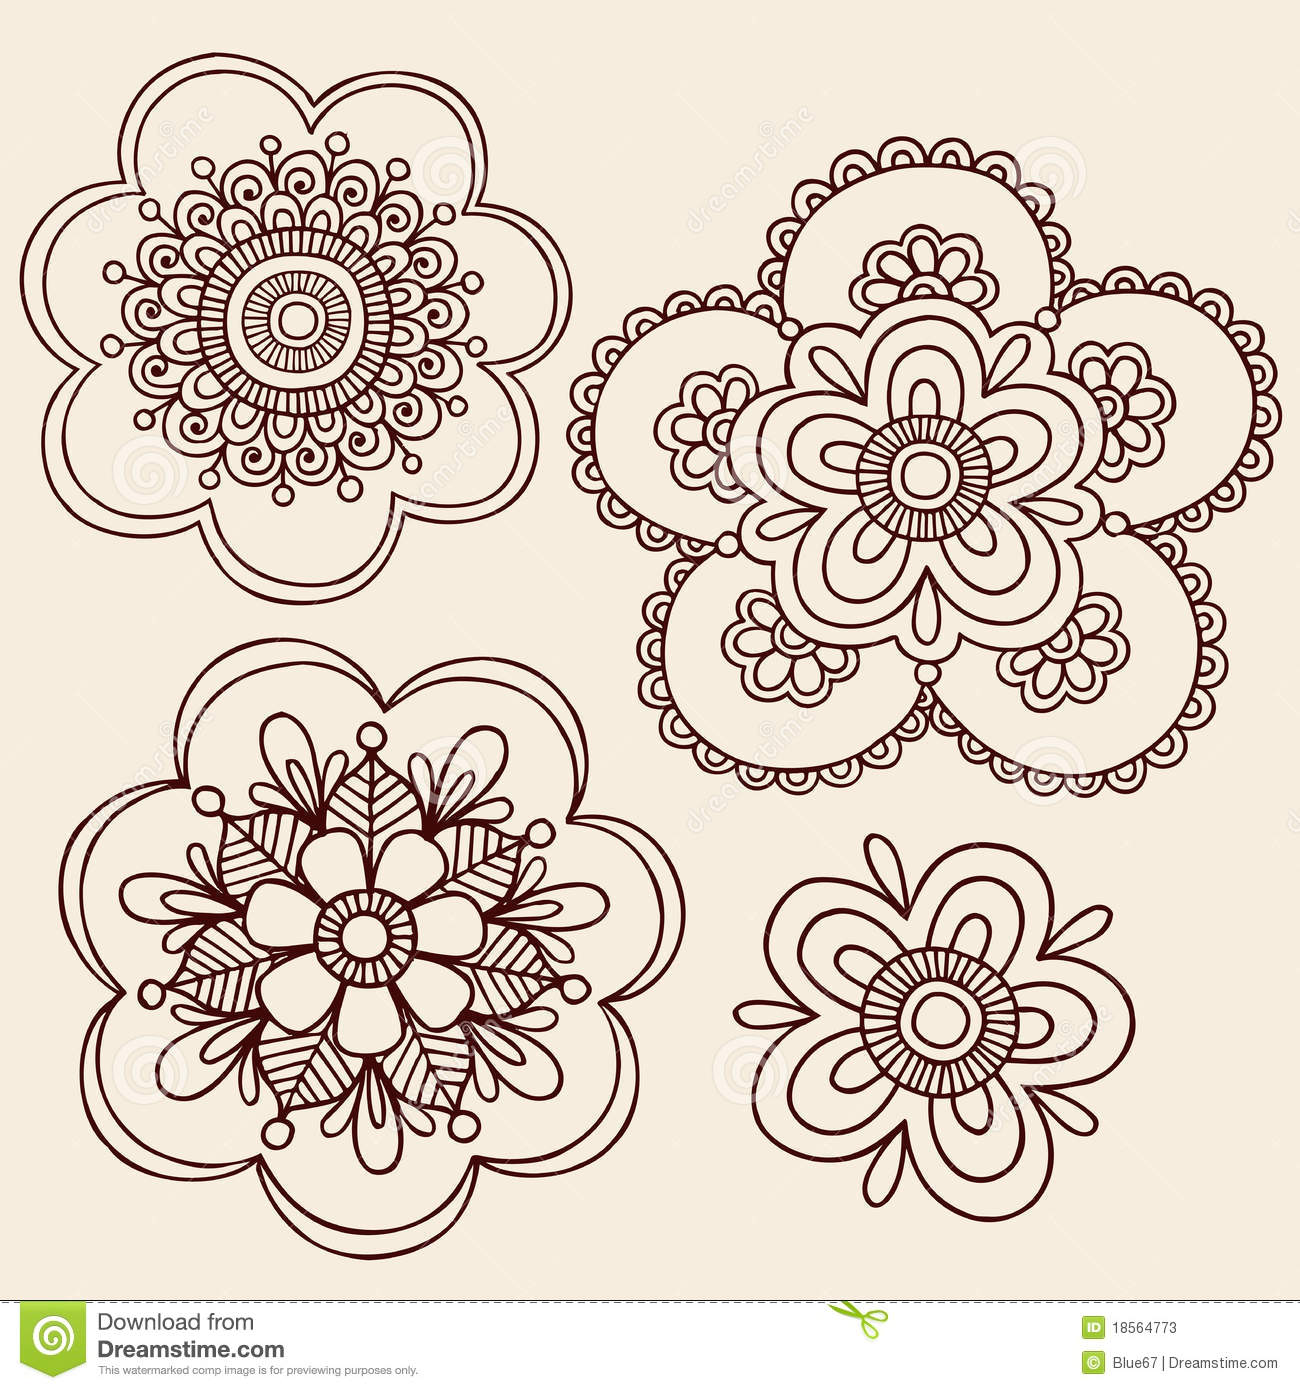 Henna Flower Designs: Henna Mehndi Paisley Flower Doodle Design Stock Vector